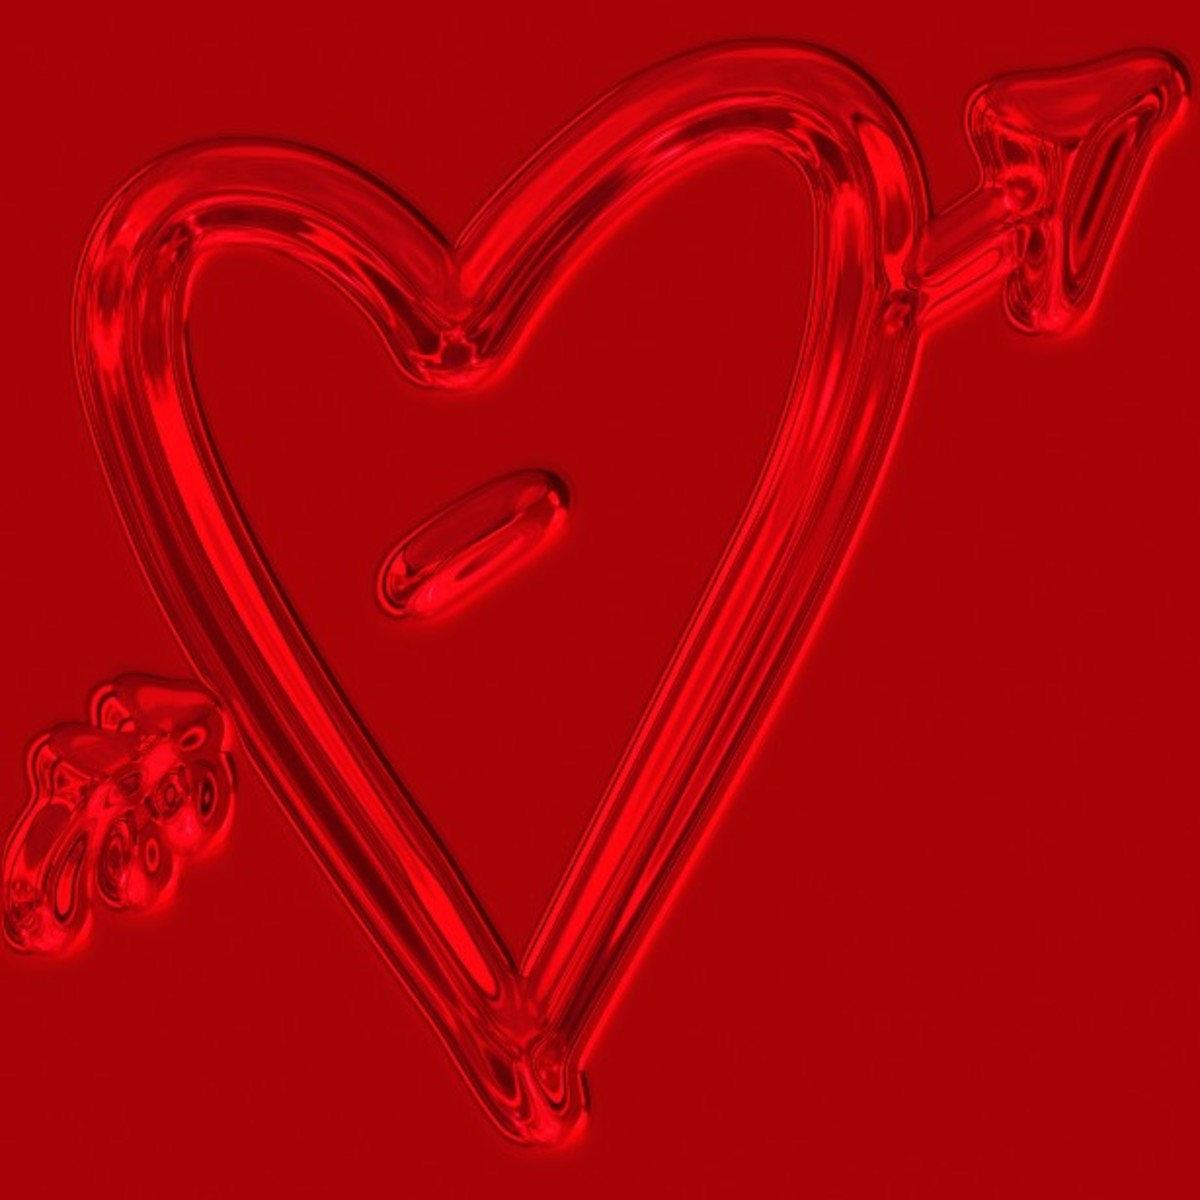 Neon Red Heart with Cupid Arrow